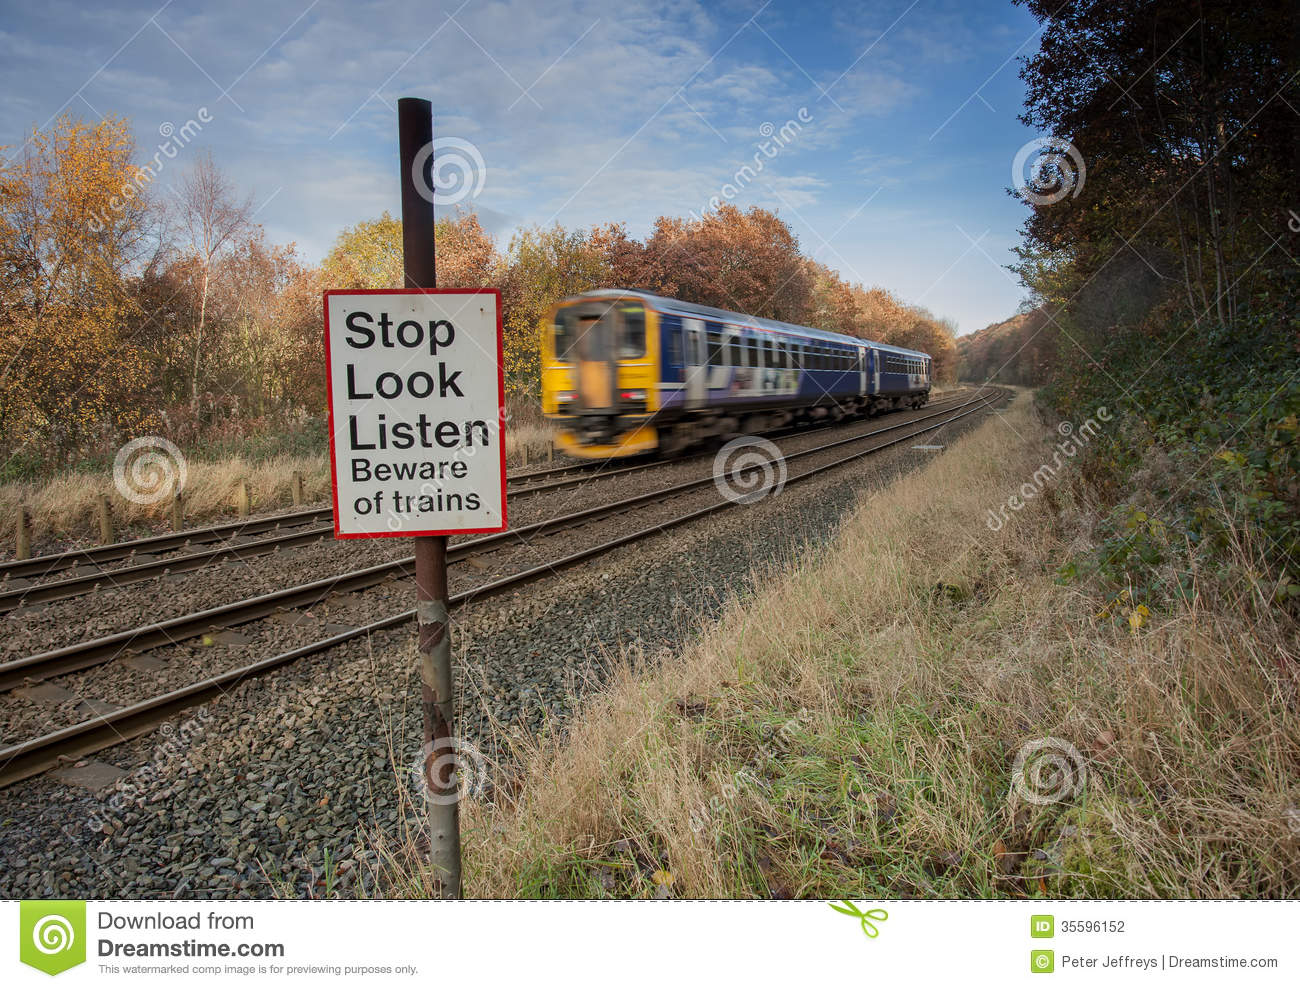 Stop Look Listen Warning At Level Crossing Stock